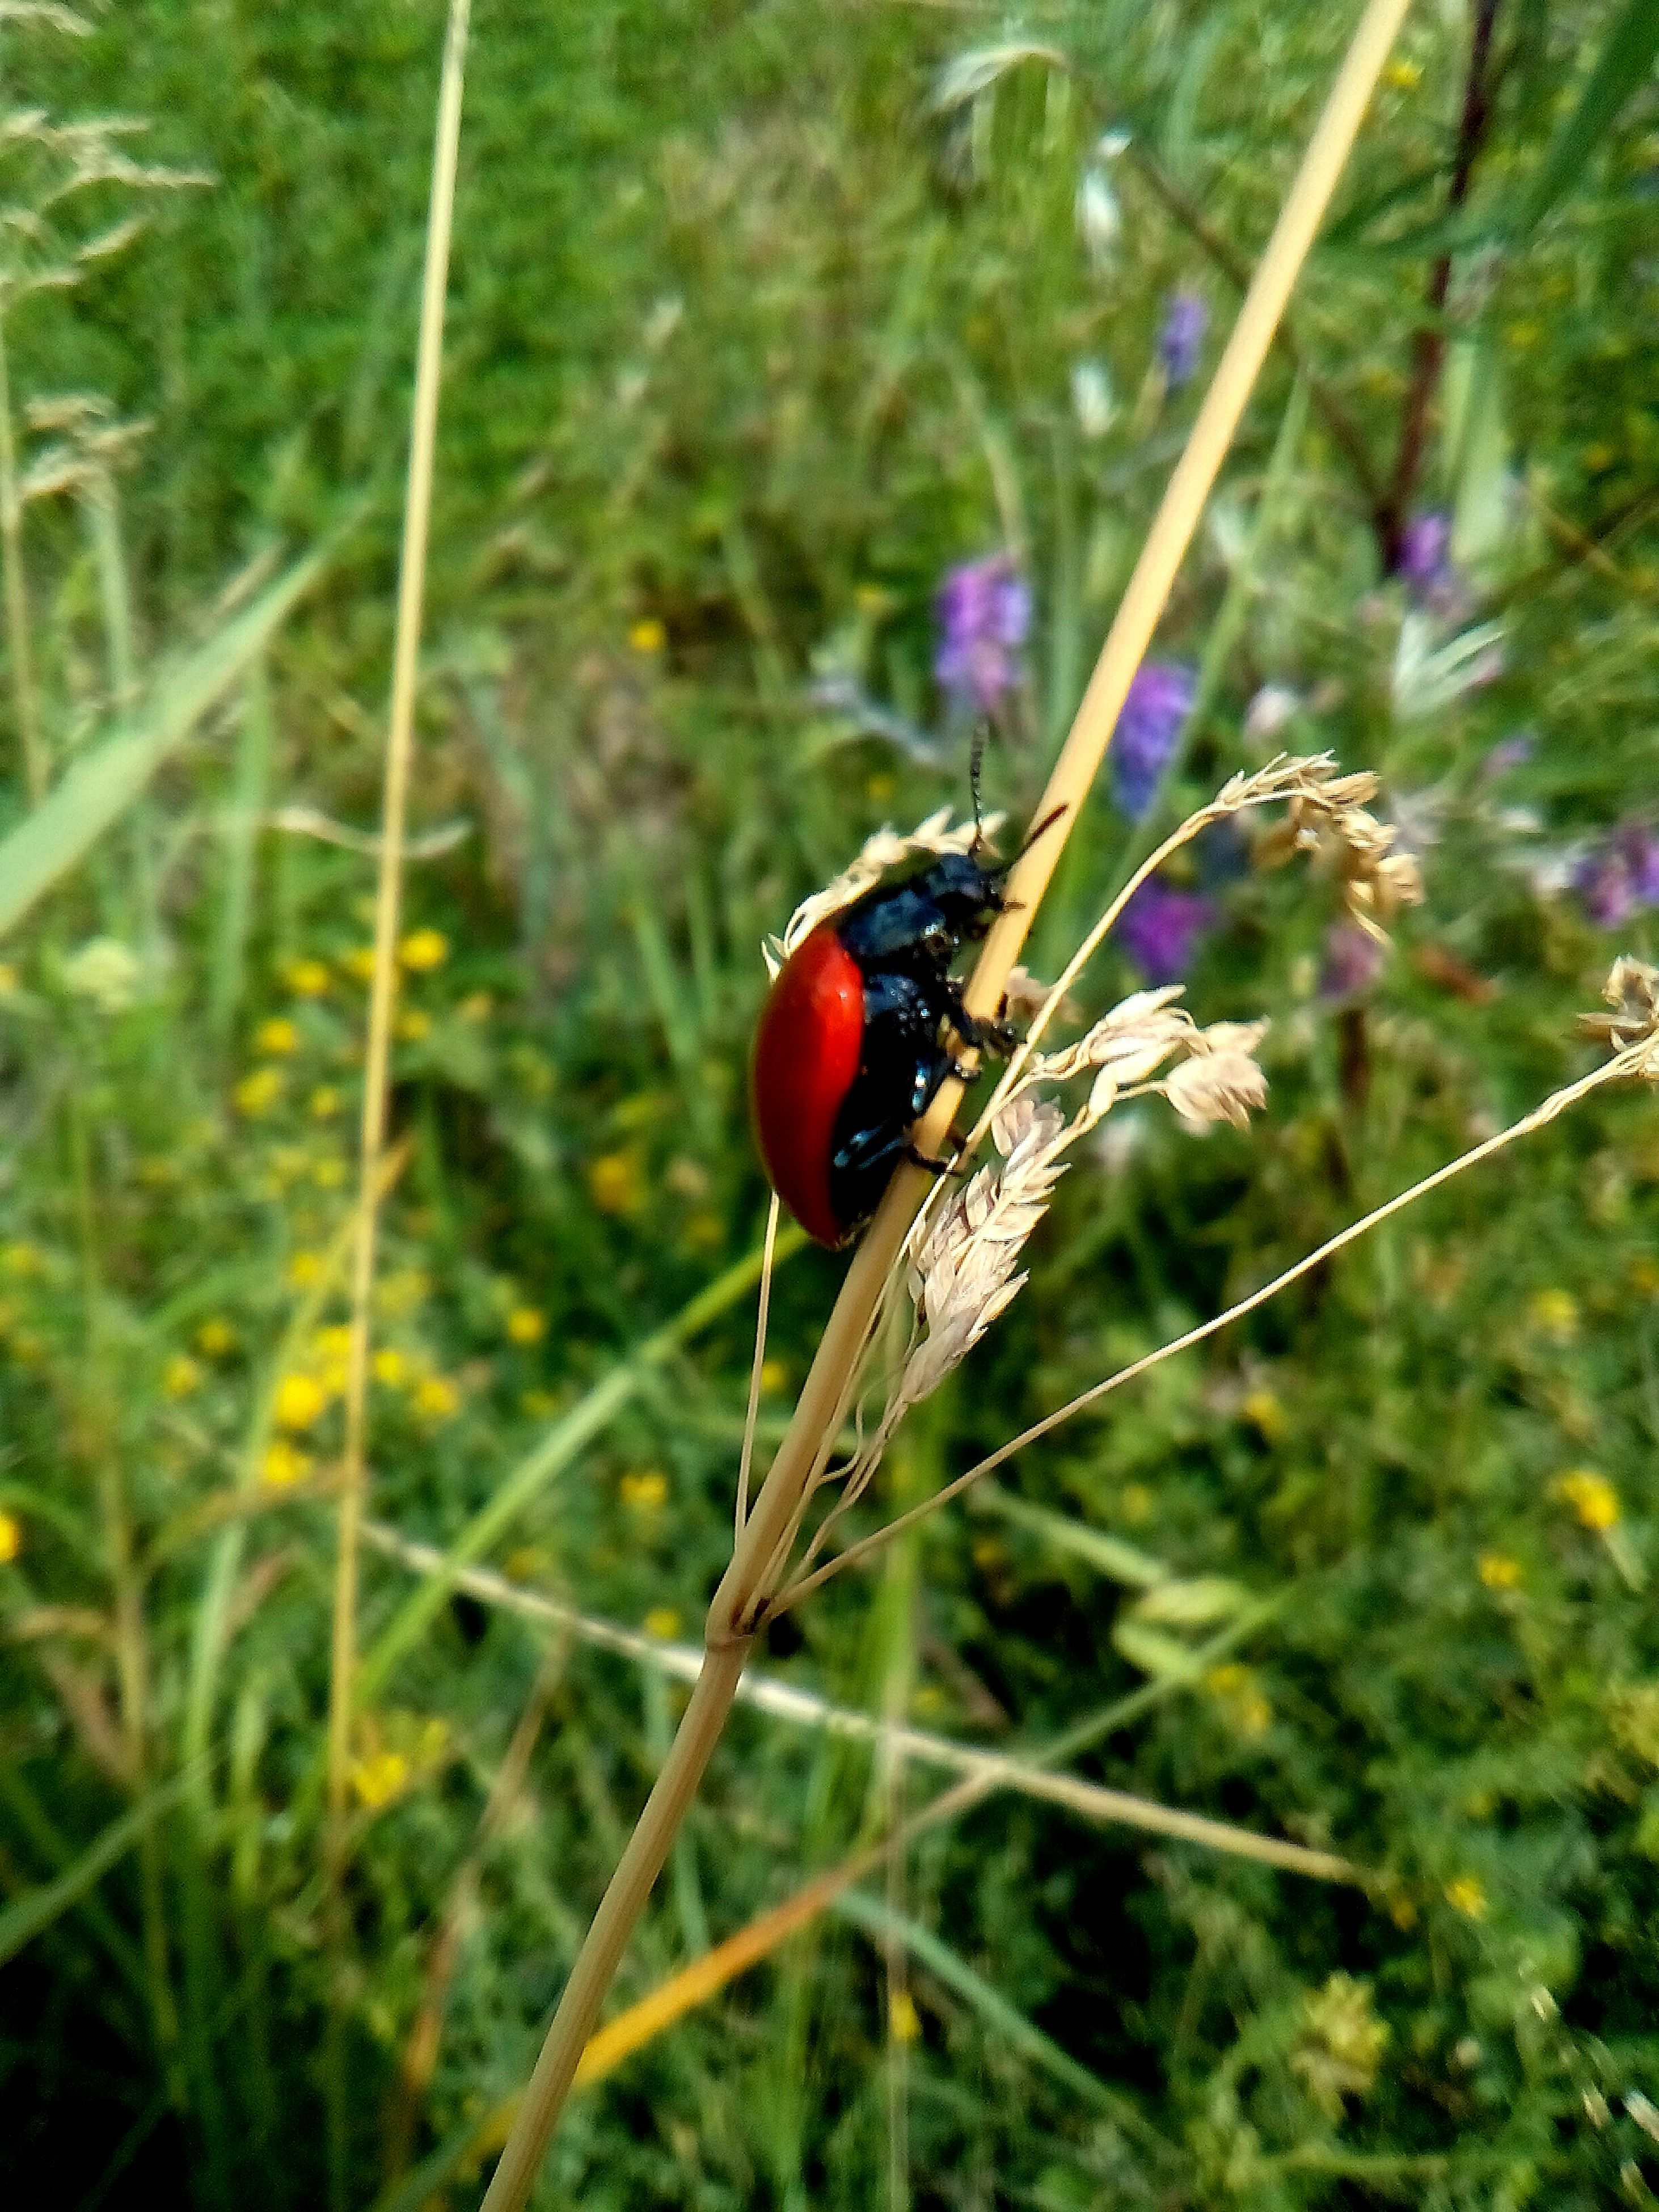 insect, animal themes, animals in the wild, one animal, nature, wildlife, close-up, no people, grass, growth, focus on foreground, day, plant, outdoors, red, ladybug, animal wildlife, tiny, beauty in nature, fragility